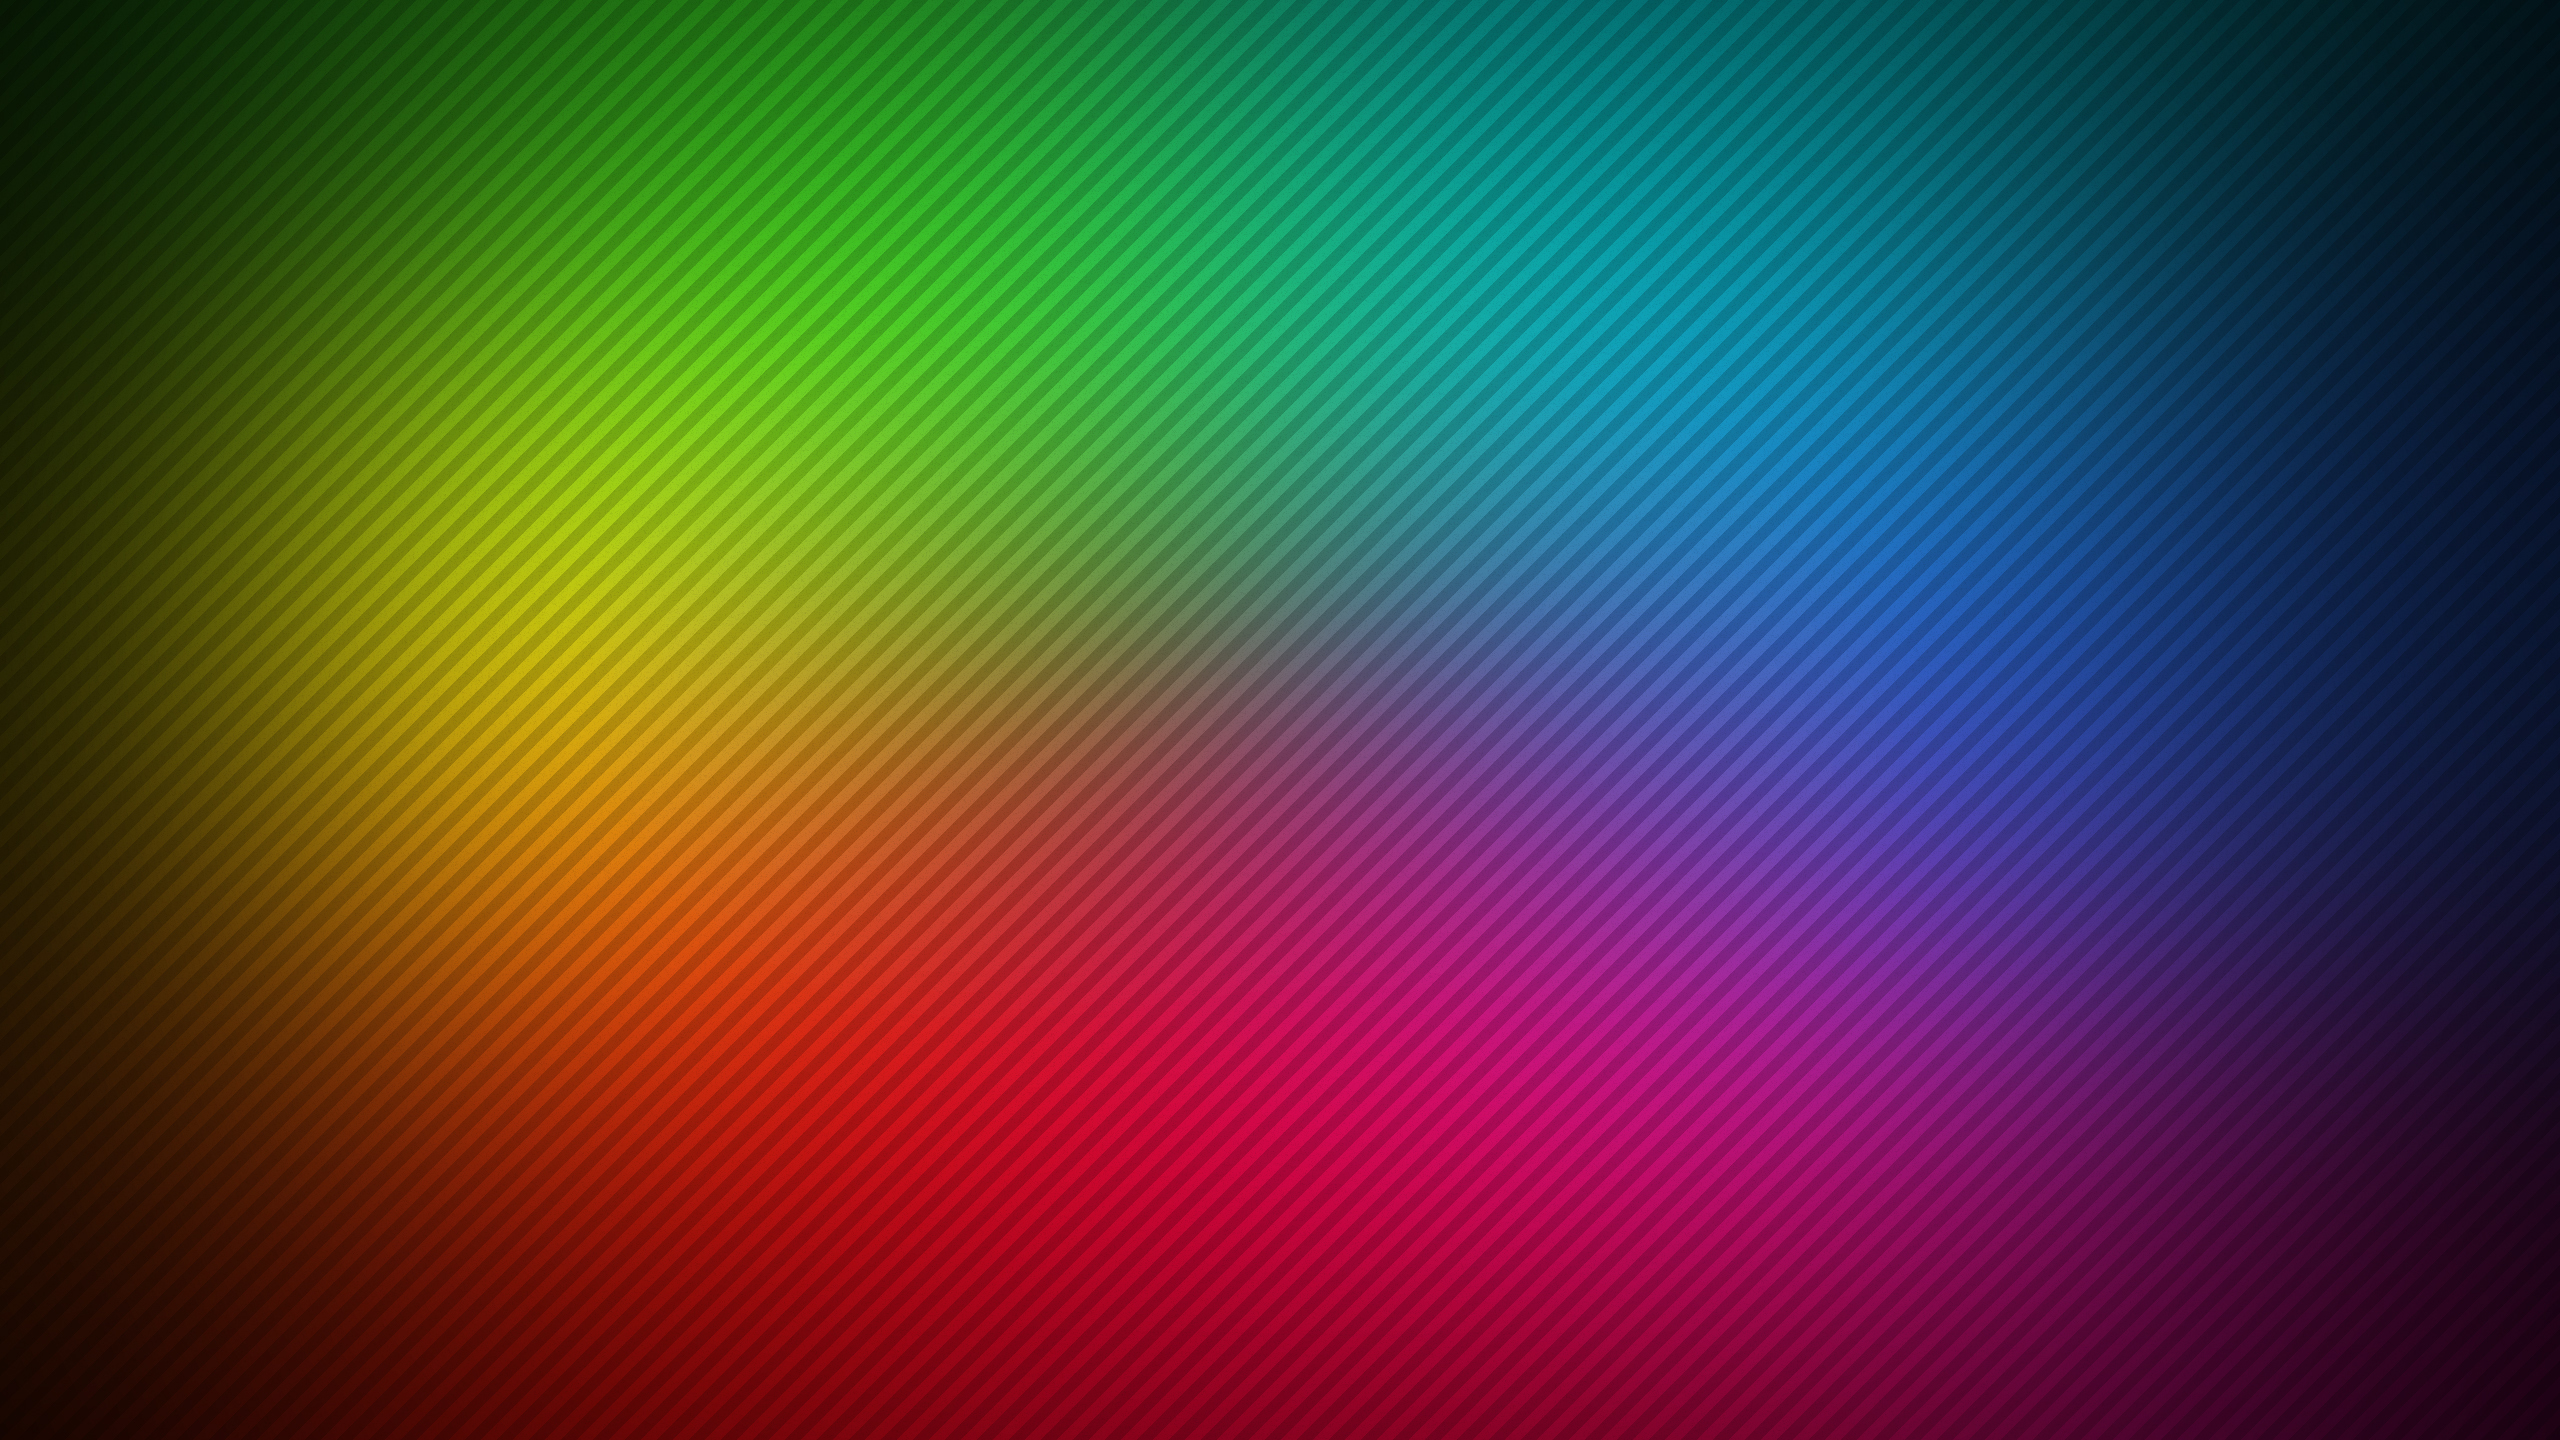 abstract rainbow lines hd p9